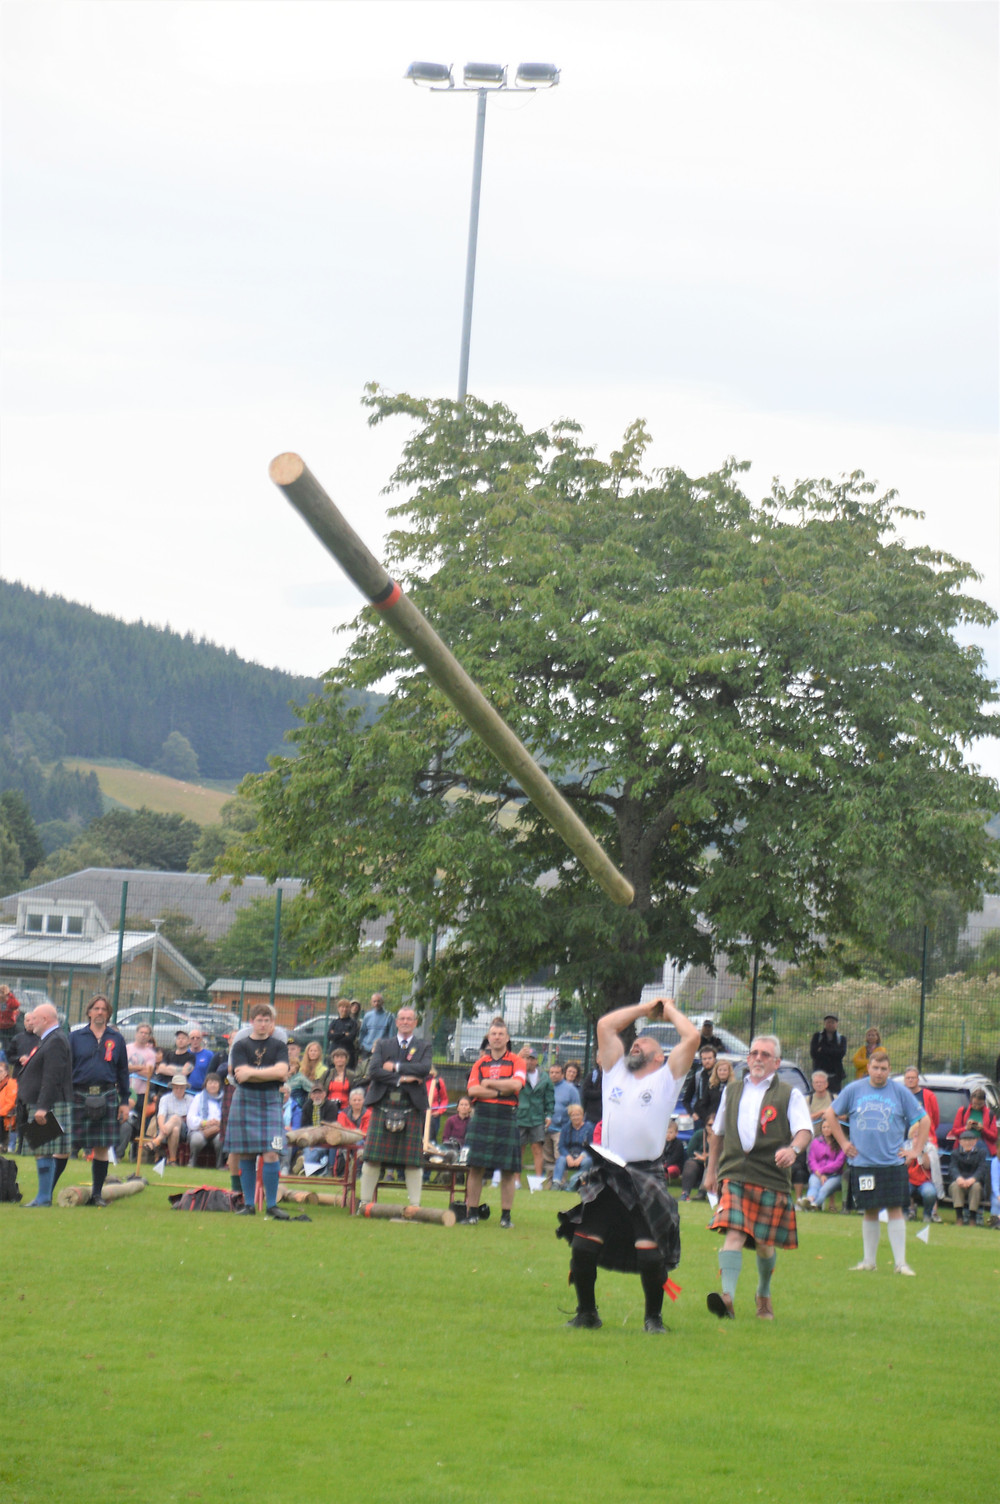 Tossing the Caber competition at the 'Glenurquhart Highlands Games that were taking place today in Drumnadrochit